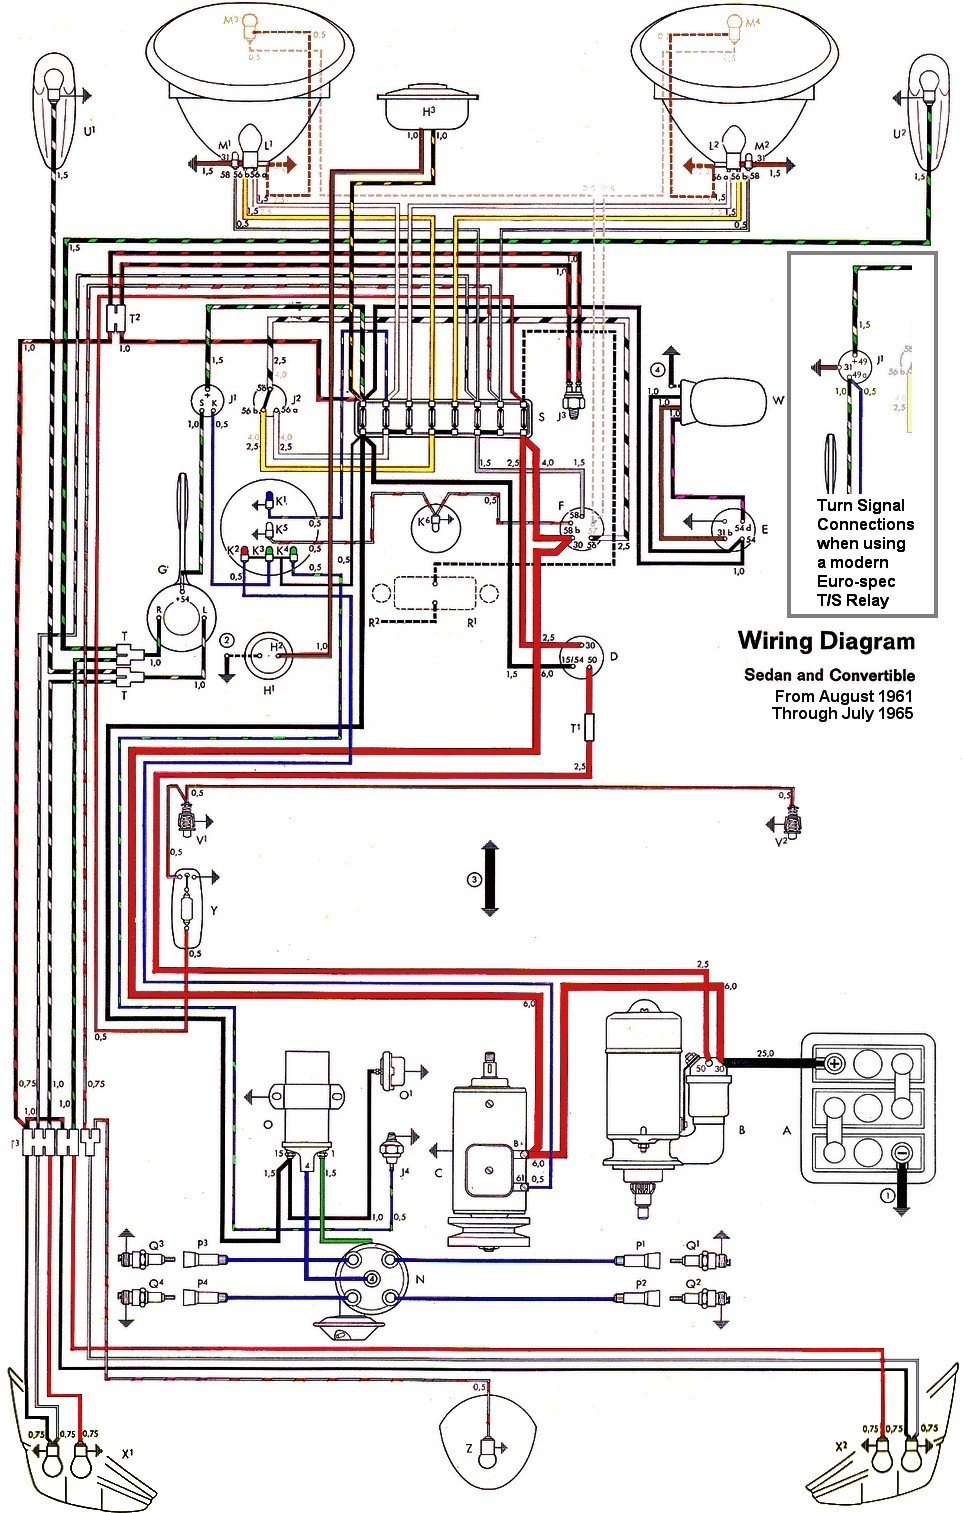 1971 Vw Beetle Fuse Diagram - Wiring Diagram Online  Beetle Wiring Harness Diagram on 71 beetle seats, 71 beetle wheels, 71 beetle fuse diagram, 71 beetle bumpers, vw beetle diagram, 71 beetle exhaust, 71 beetle engine, 71 beetle parts, super beetle engine diagram, 71 beetle carb diagram, 71 beetle rear suspension, 1971 vw engine diagram, 71 beetle oil filter,